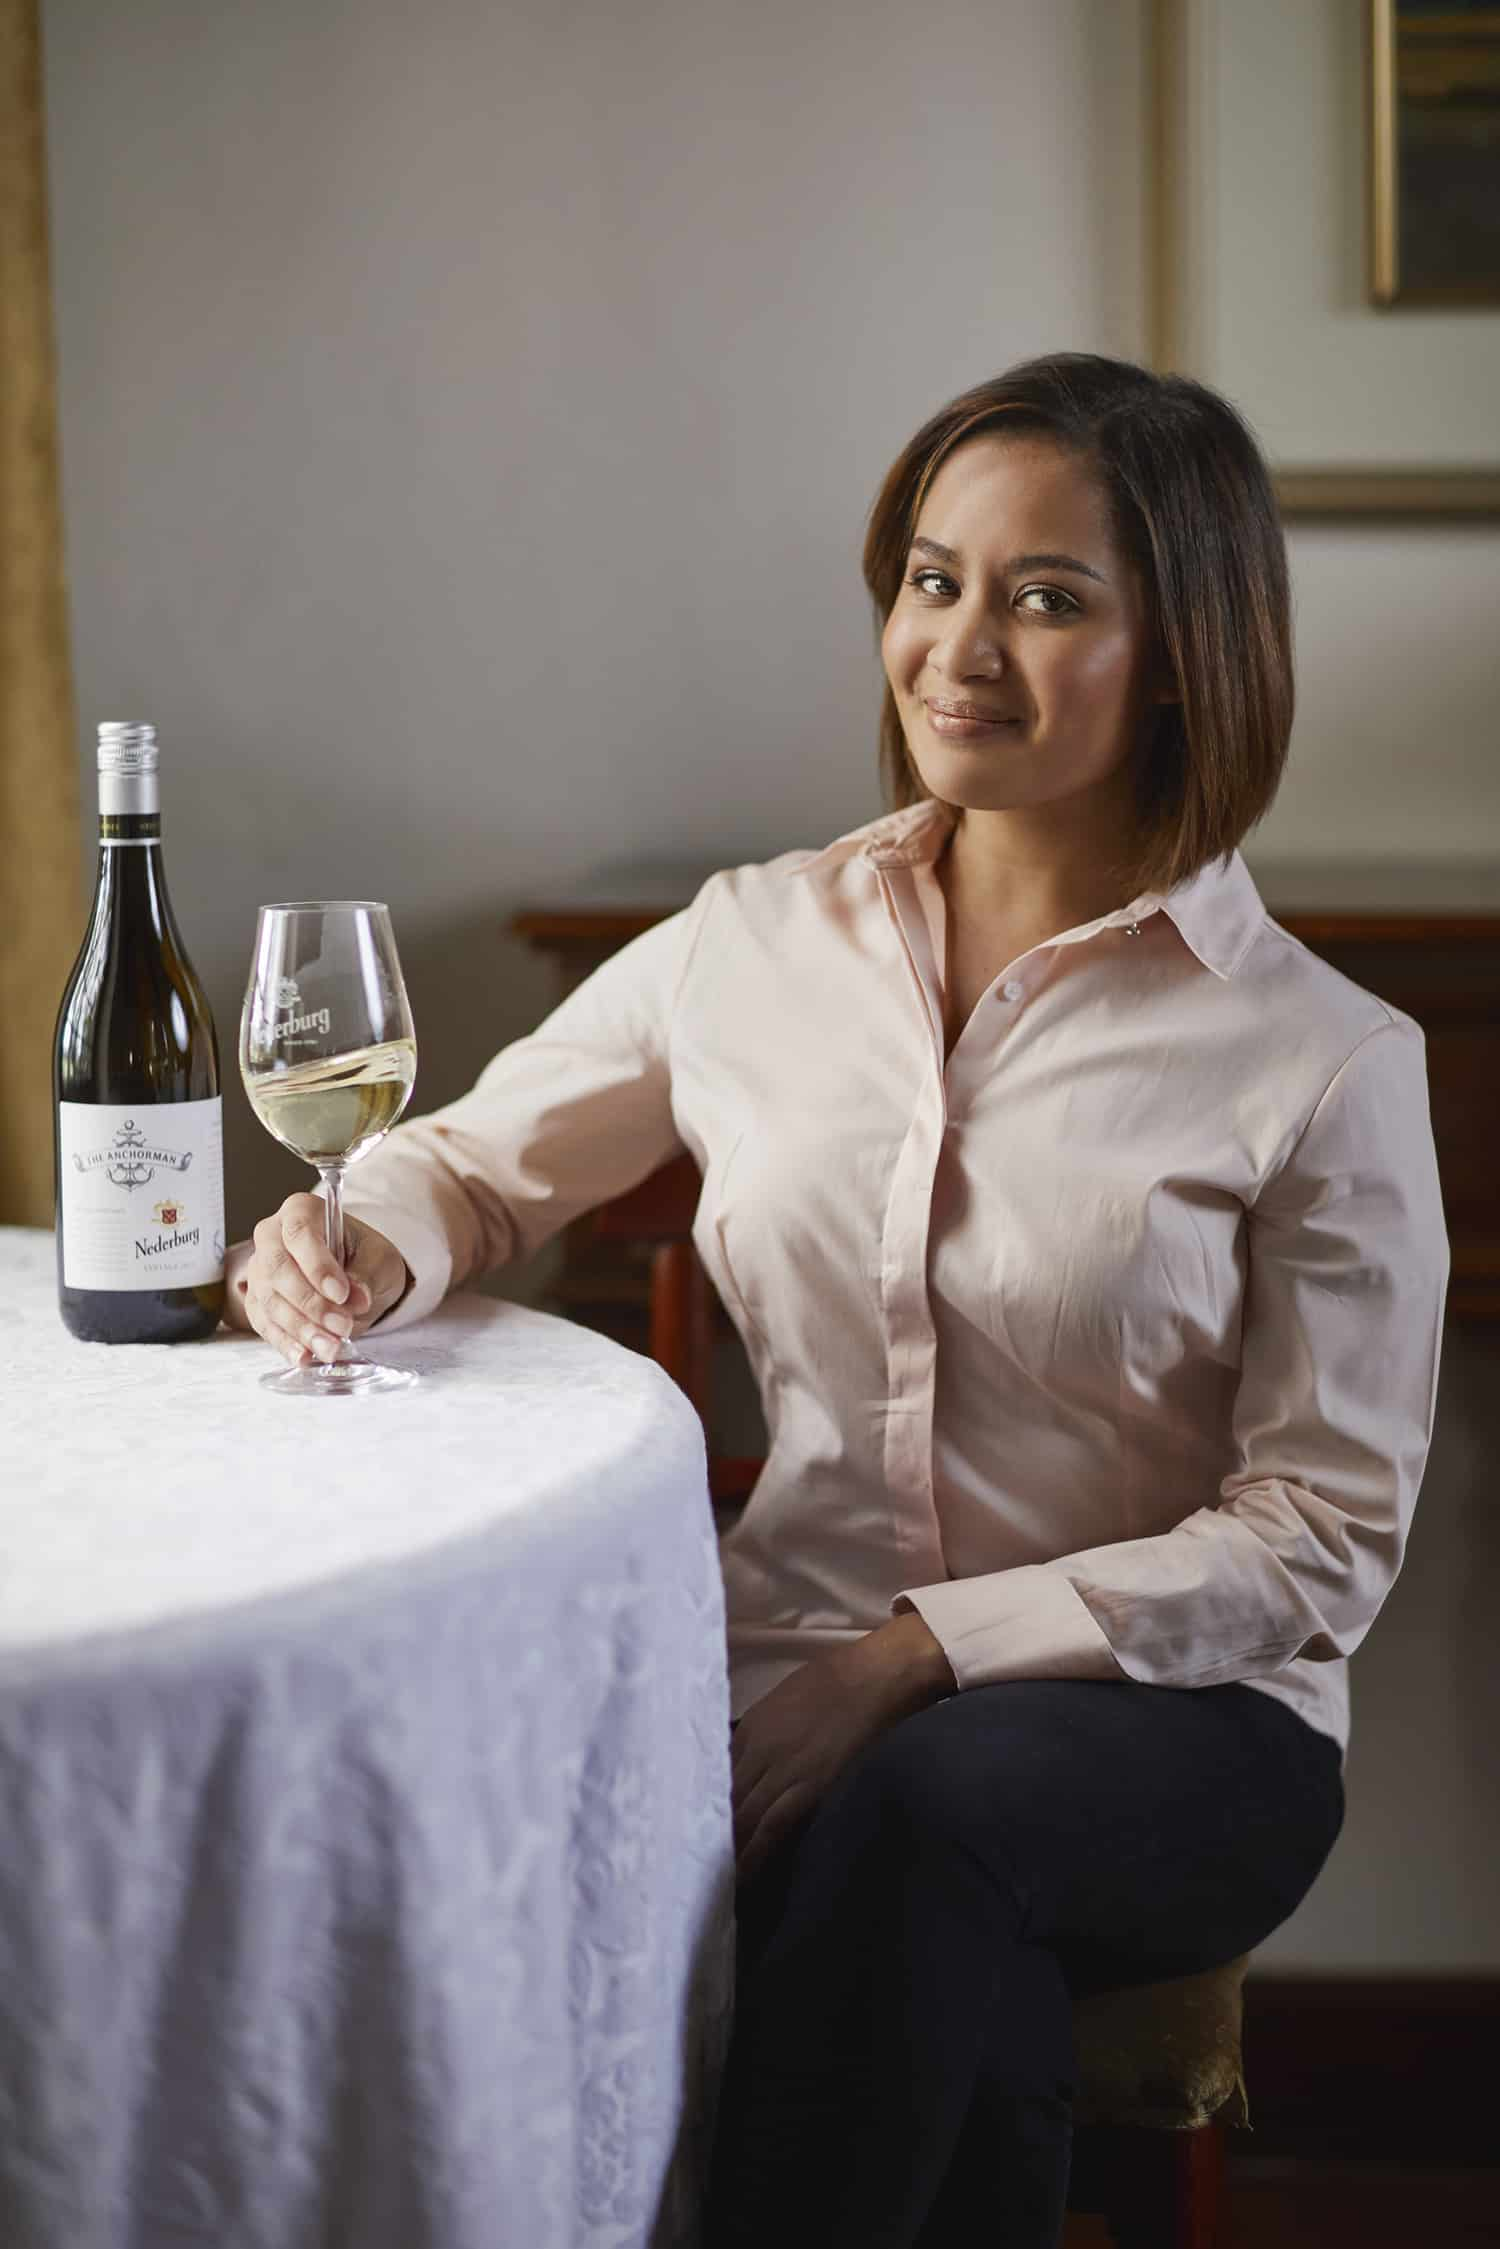 """Jamie Williams from Nederburg Wines is one of the hand-picked winemakers featured in Food For Mzansi's """"21 faces of summer"""" campaign. Photo: Food For Mzansi"""